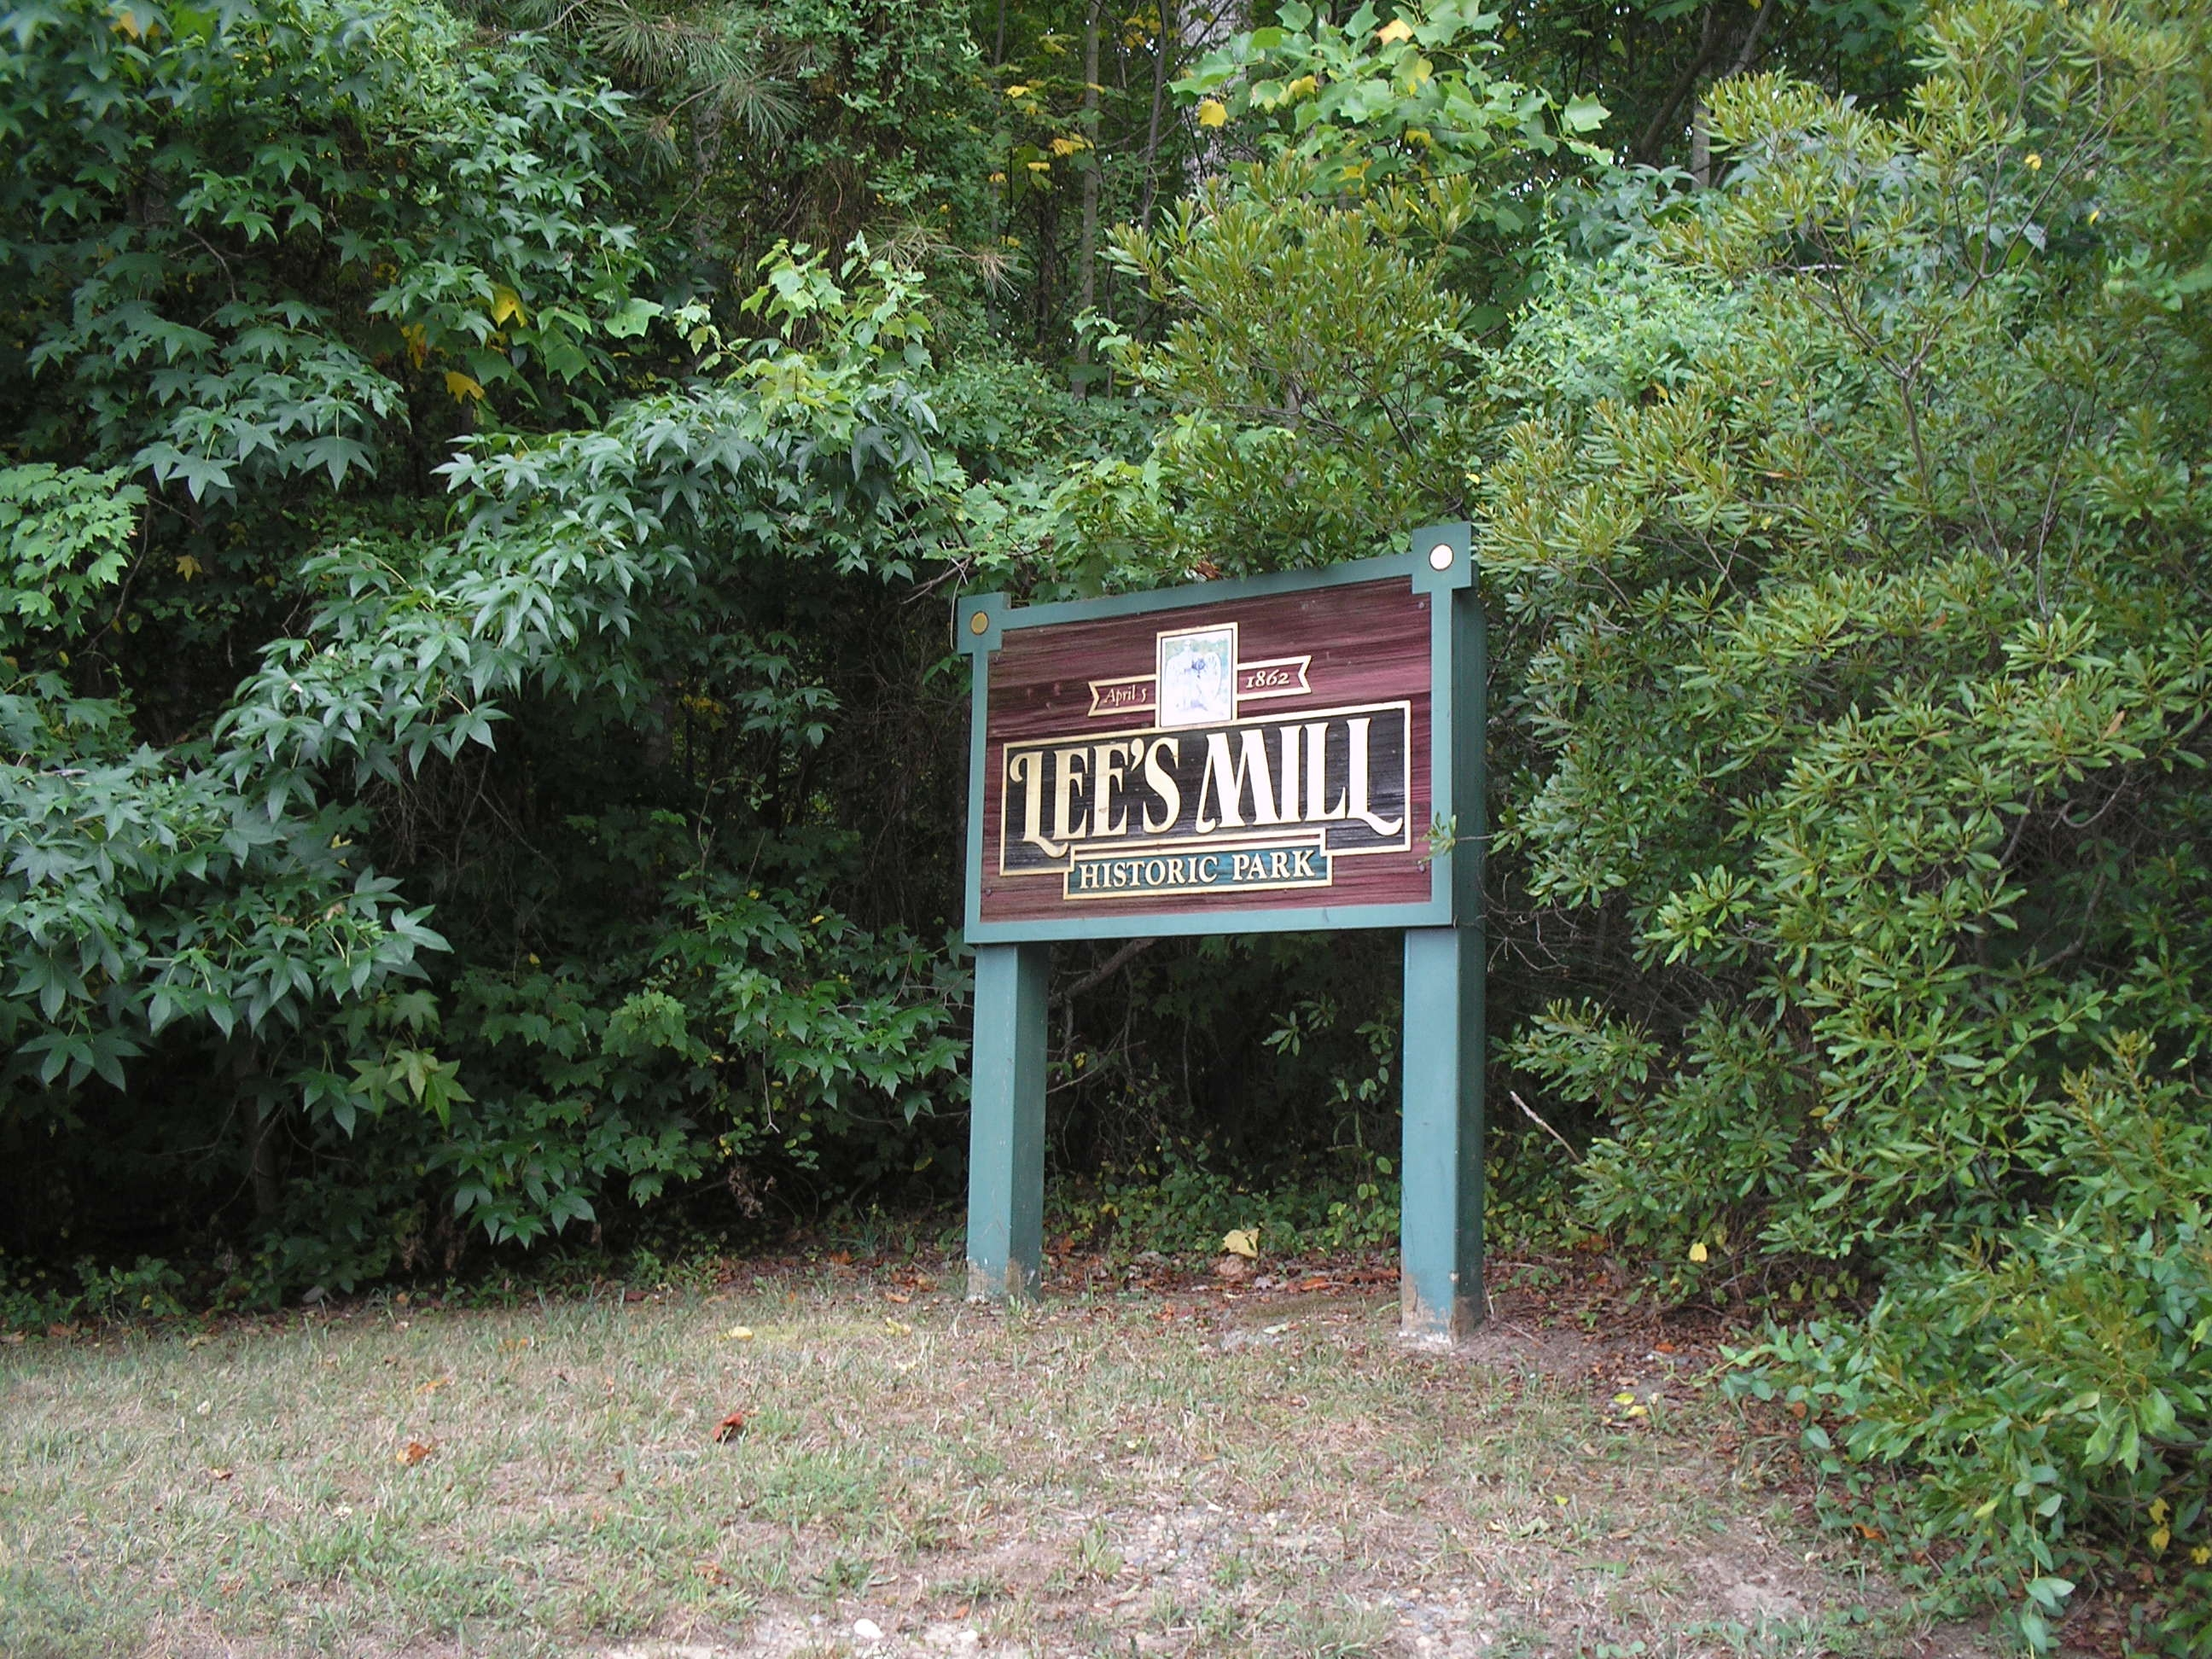 Lee's Mill Historic Park